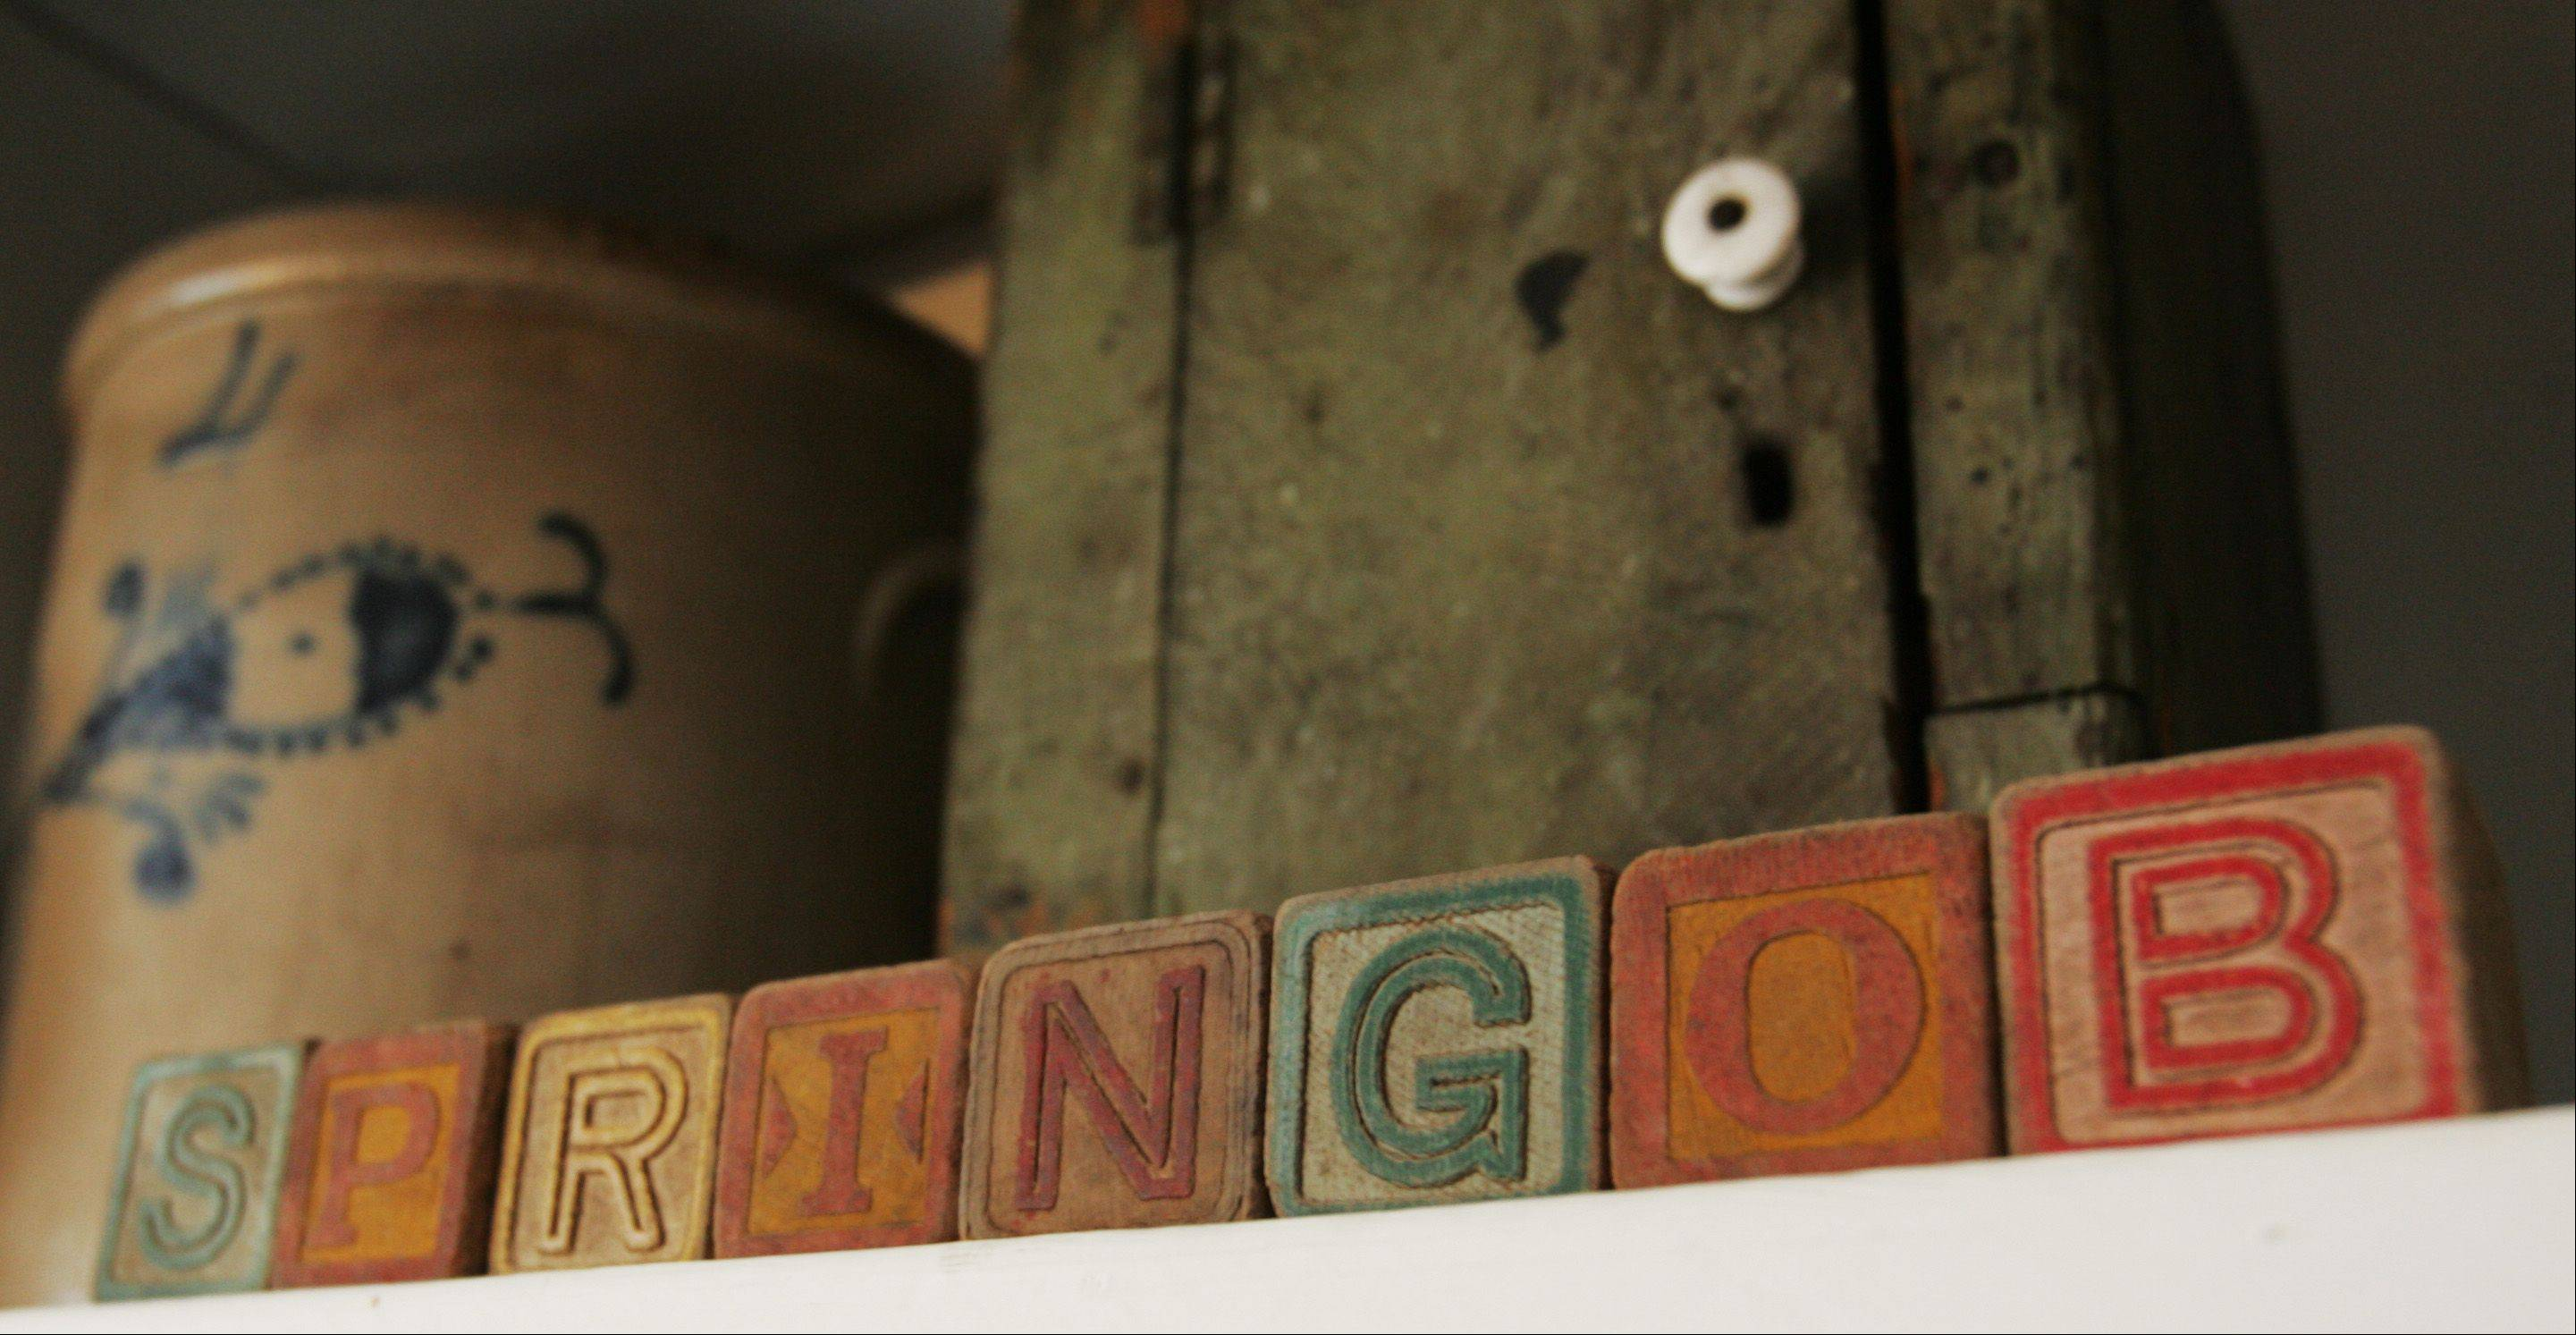 Antique toy blocks spell out the couple's last name on a shelf.